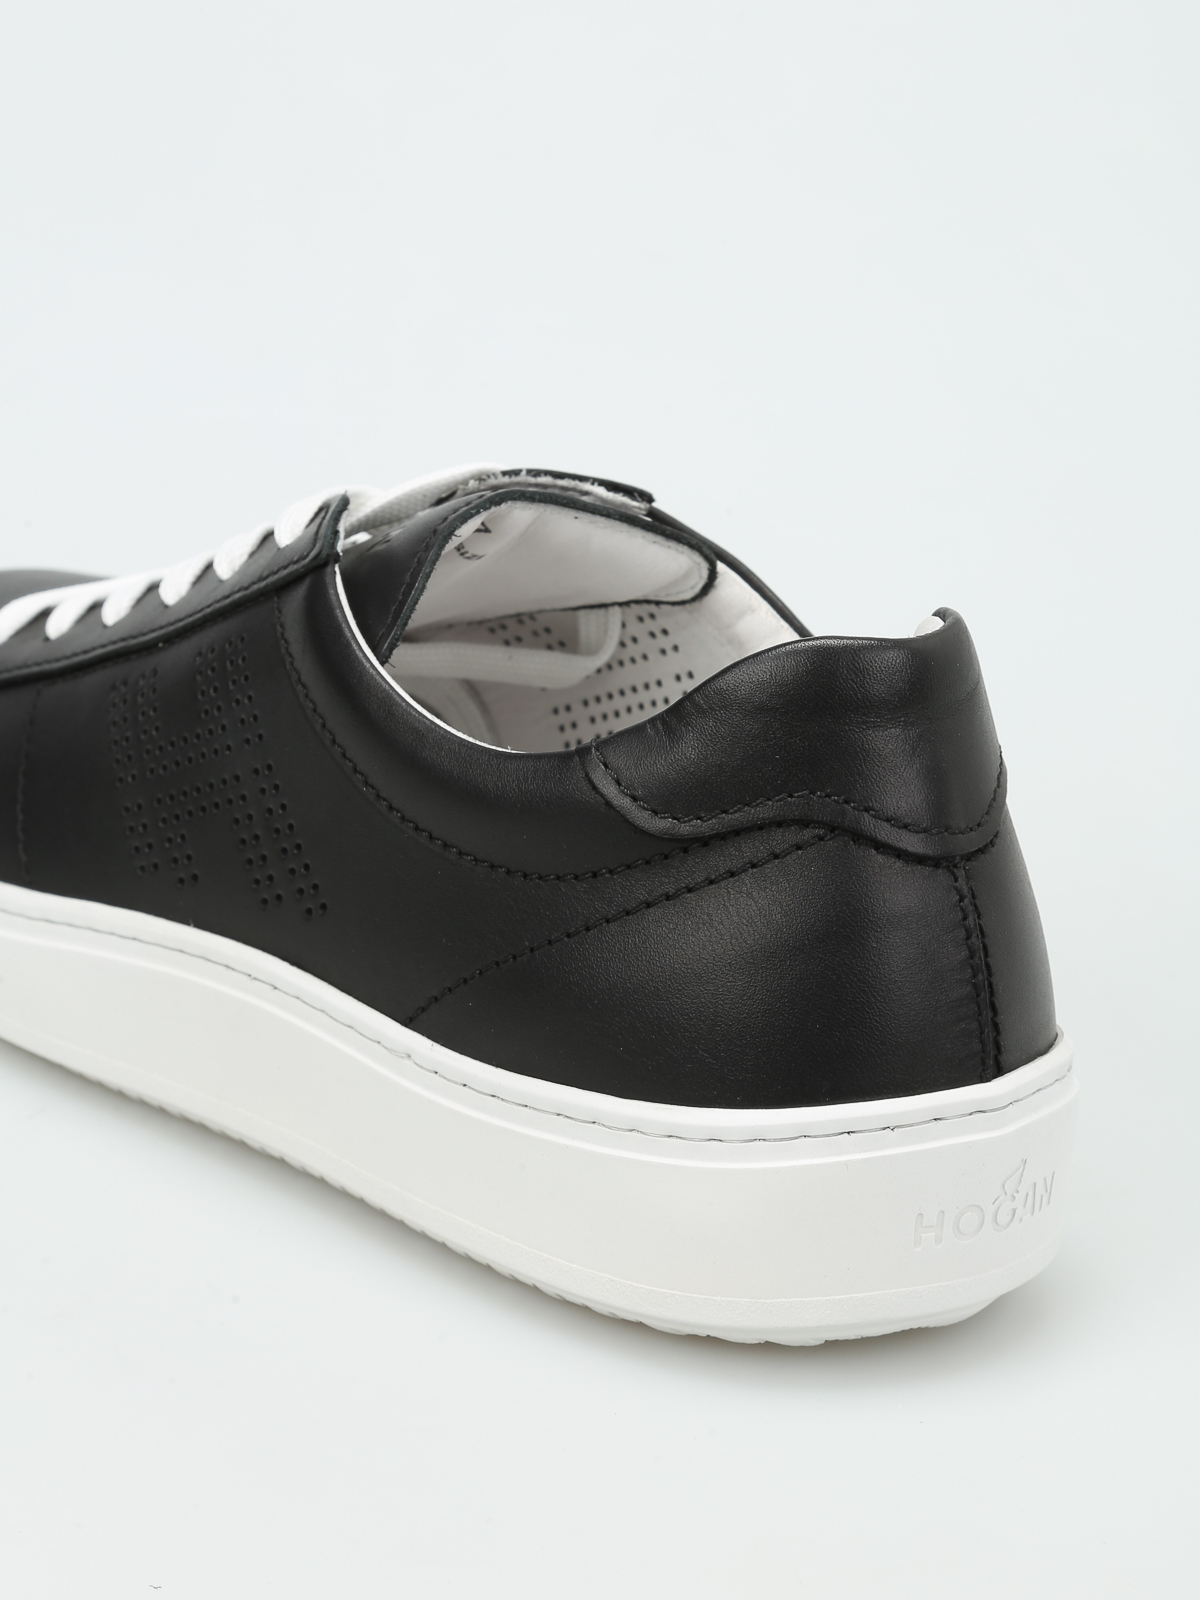 Hogan Shop Online Sneaker In Pelle H302 Hogan Sneakers Ikrix Shop Online